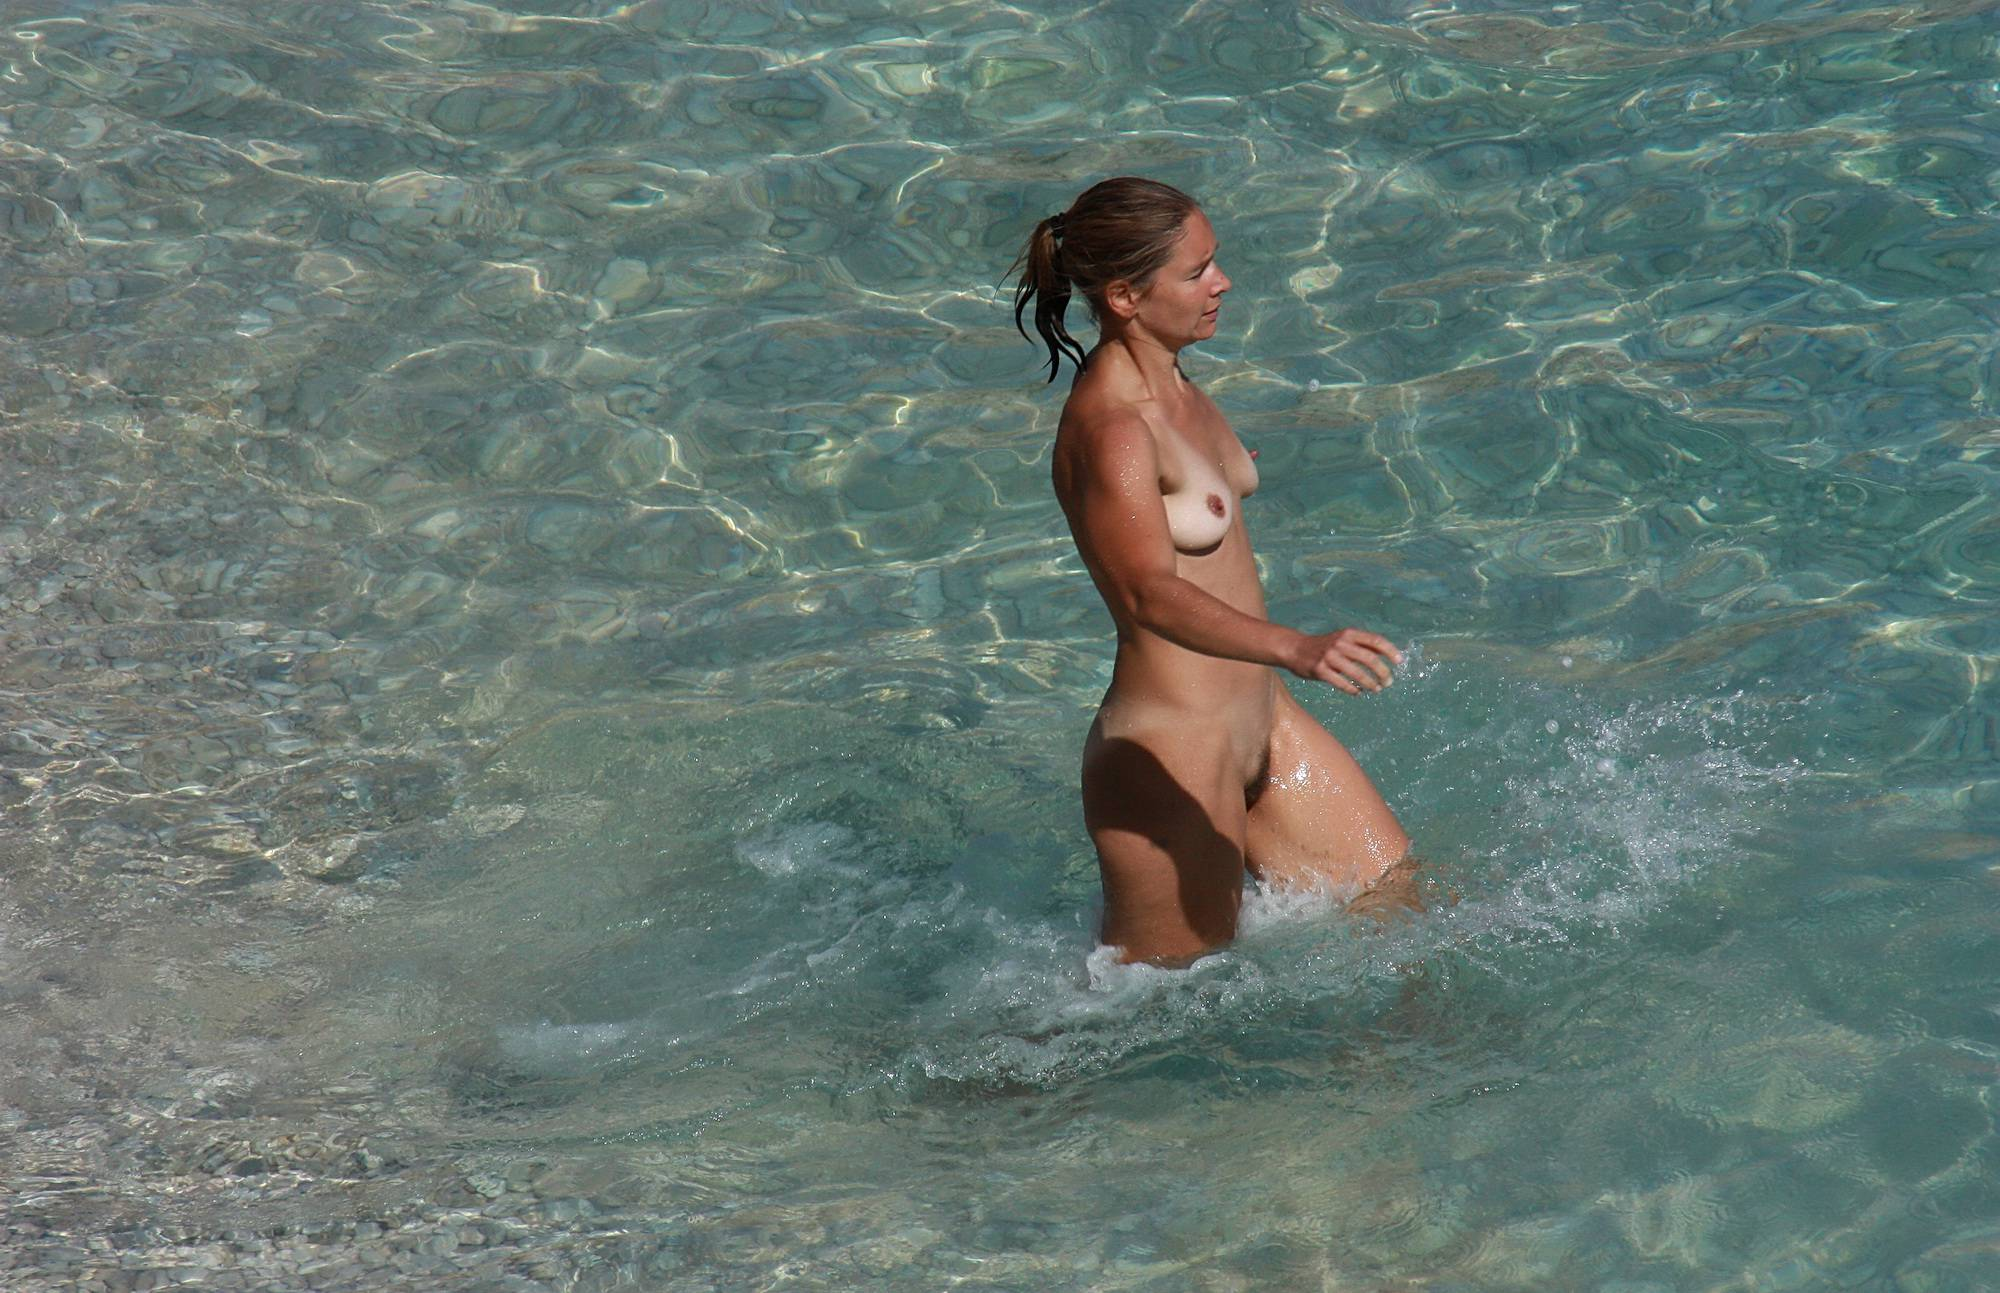 Nudist Pics Swimming For Exercise - 1